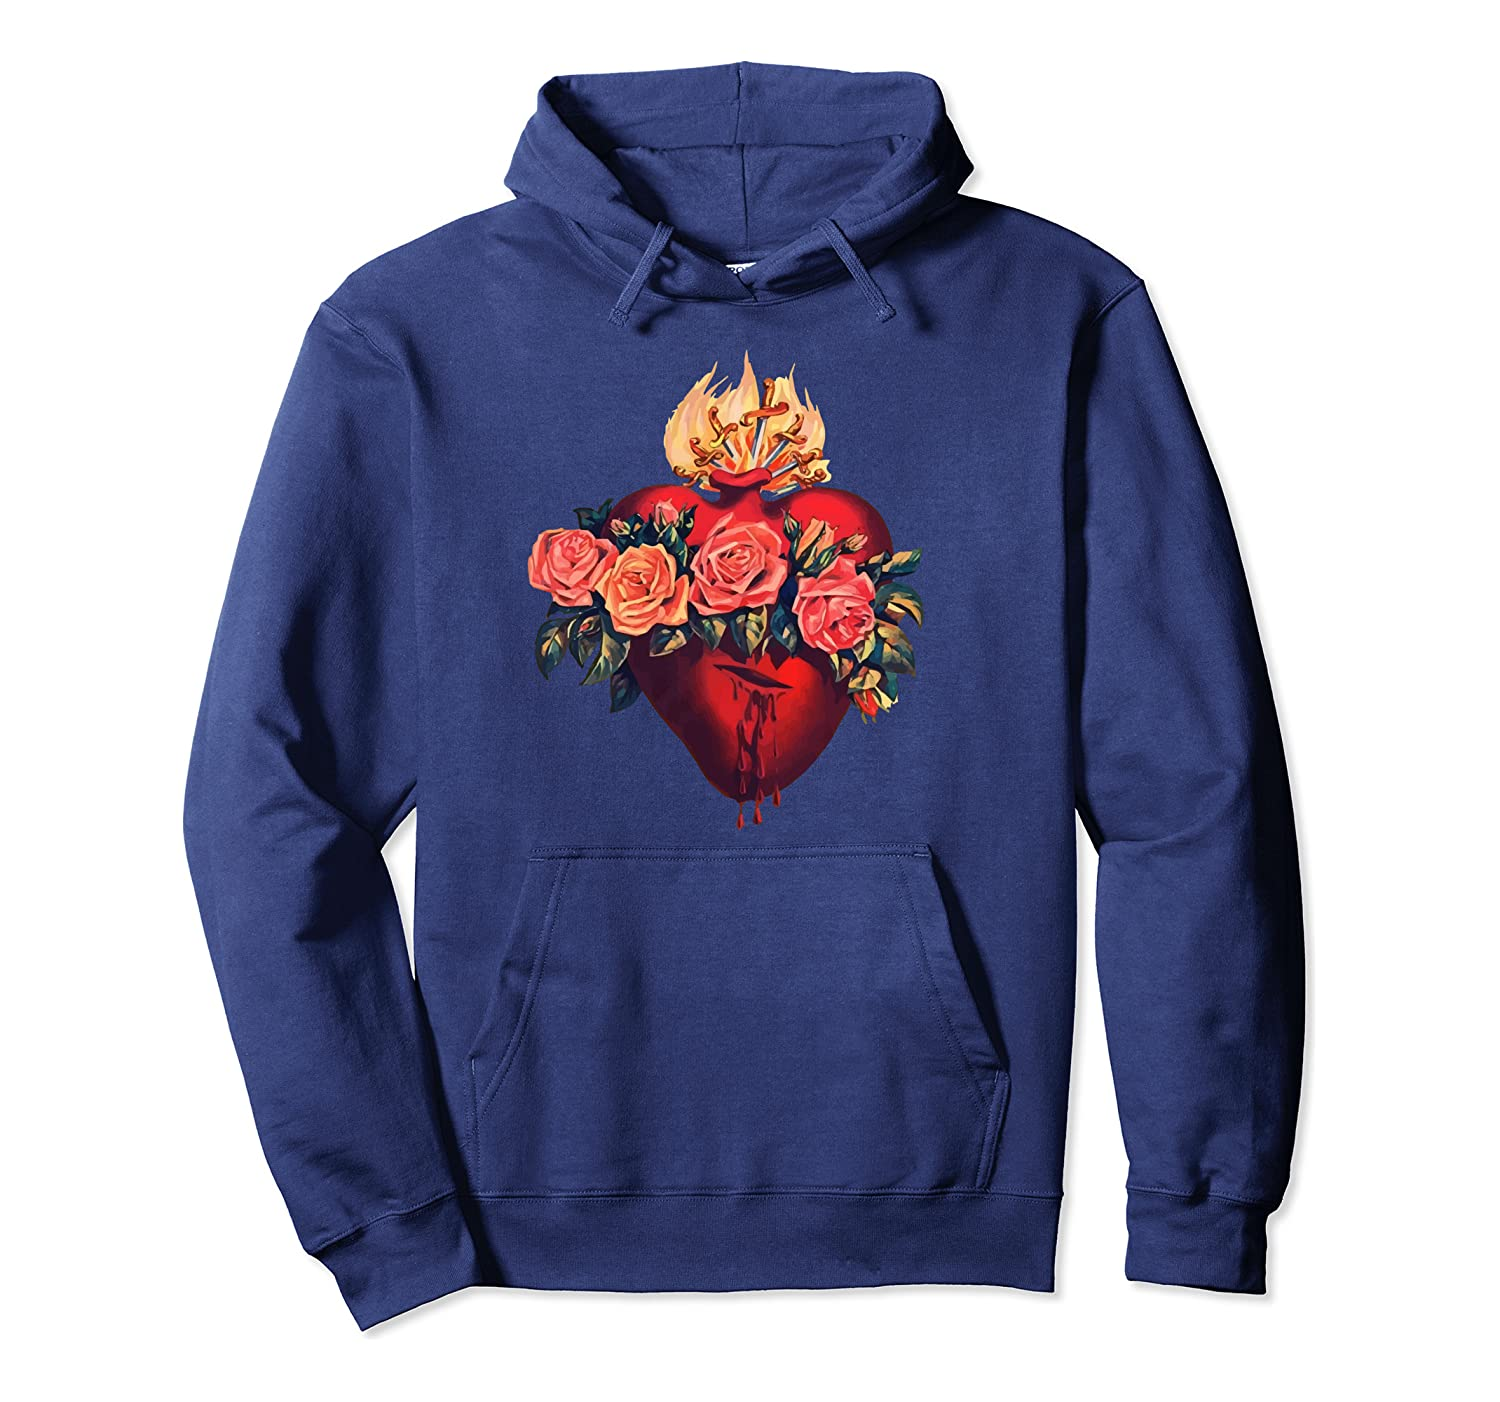 Immaculate Heart of Mary Vintage Blessed Catholic Sorrows Pullover Hoodie